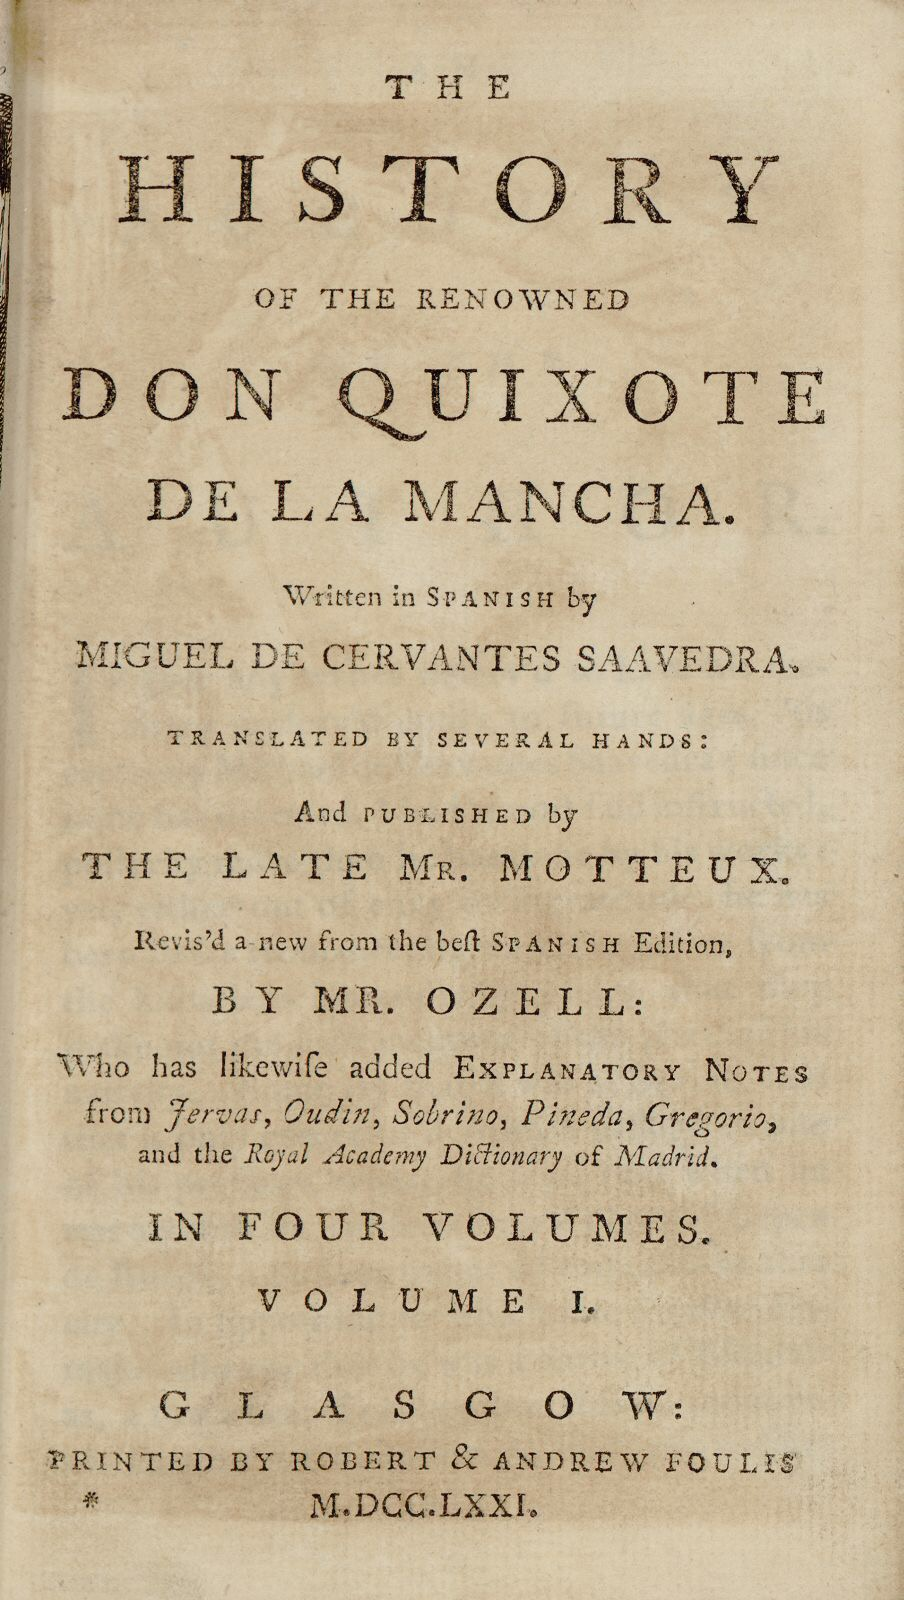 essays on the book don quixote de la mancha Home / blog / samples / book review samples / don quixote analysis: opposed characters get your writing assignment done in 4 simple steps 1 fill in order don quixote de la mancha new york, ny: ← nursing essay sample.